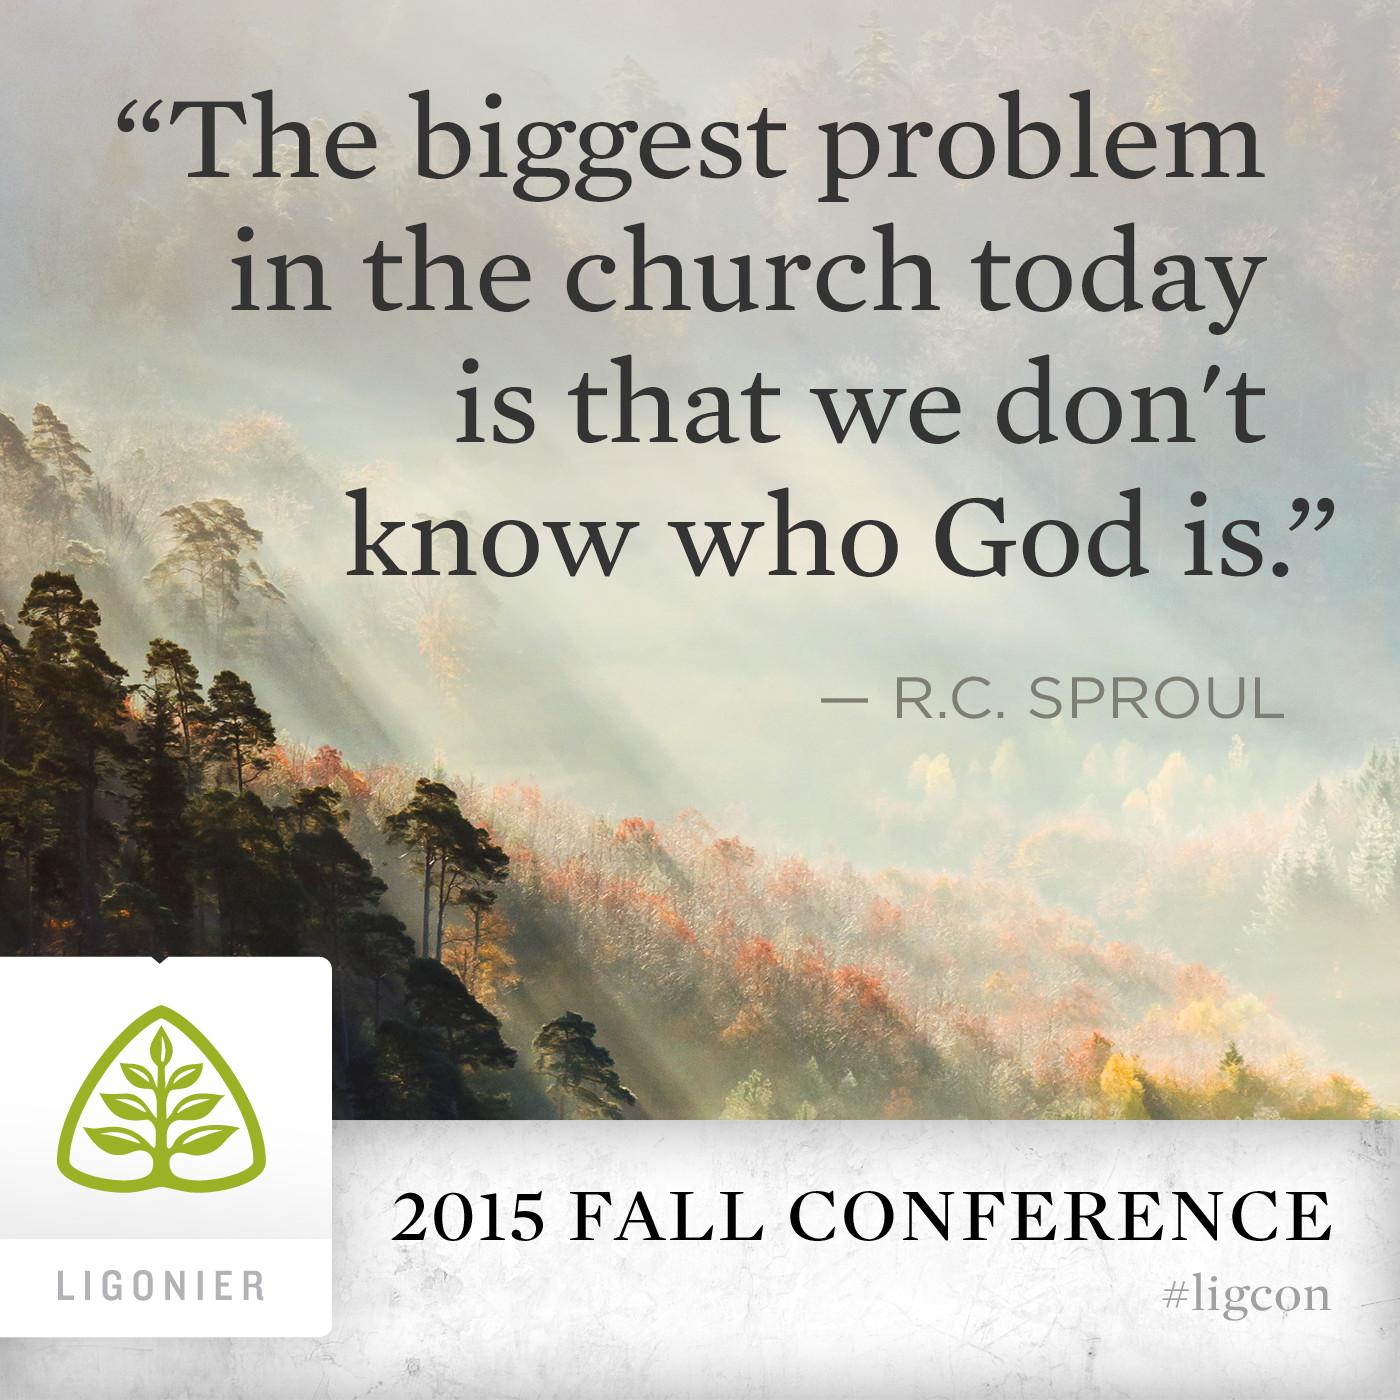 The biggest problem in the church today is that we don't know who God is. —RC Sproul #ligcon http://t.co/fwF1f7b22j